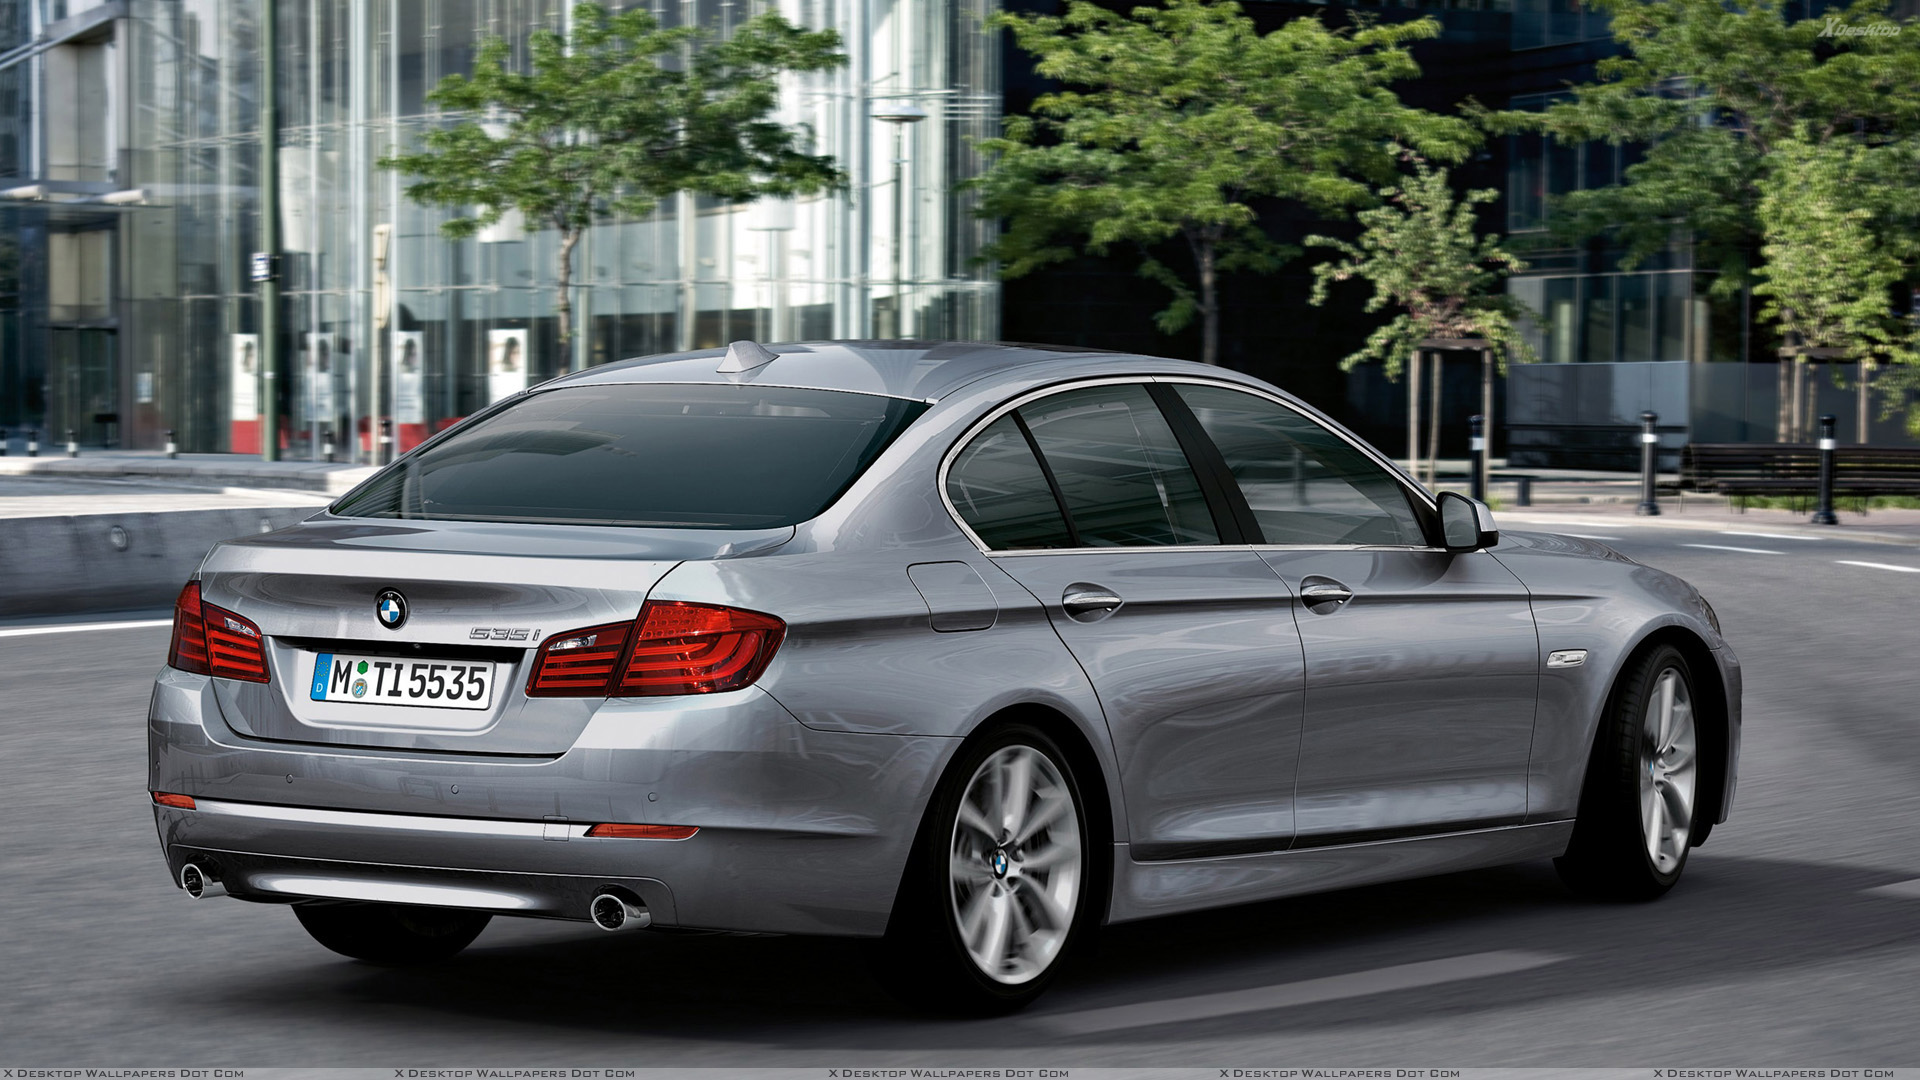 side pose of 2011 bmw 5 series sedan running in grey wallpaper rh xdesktopwallpapers com SMG Transmission BMW 5 Series Custom BMW 5 Series Manual